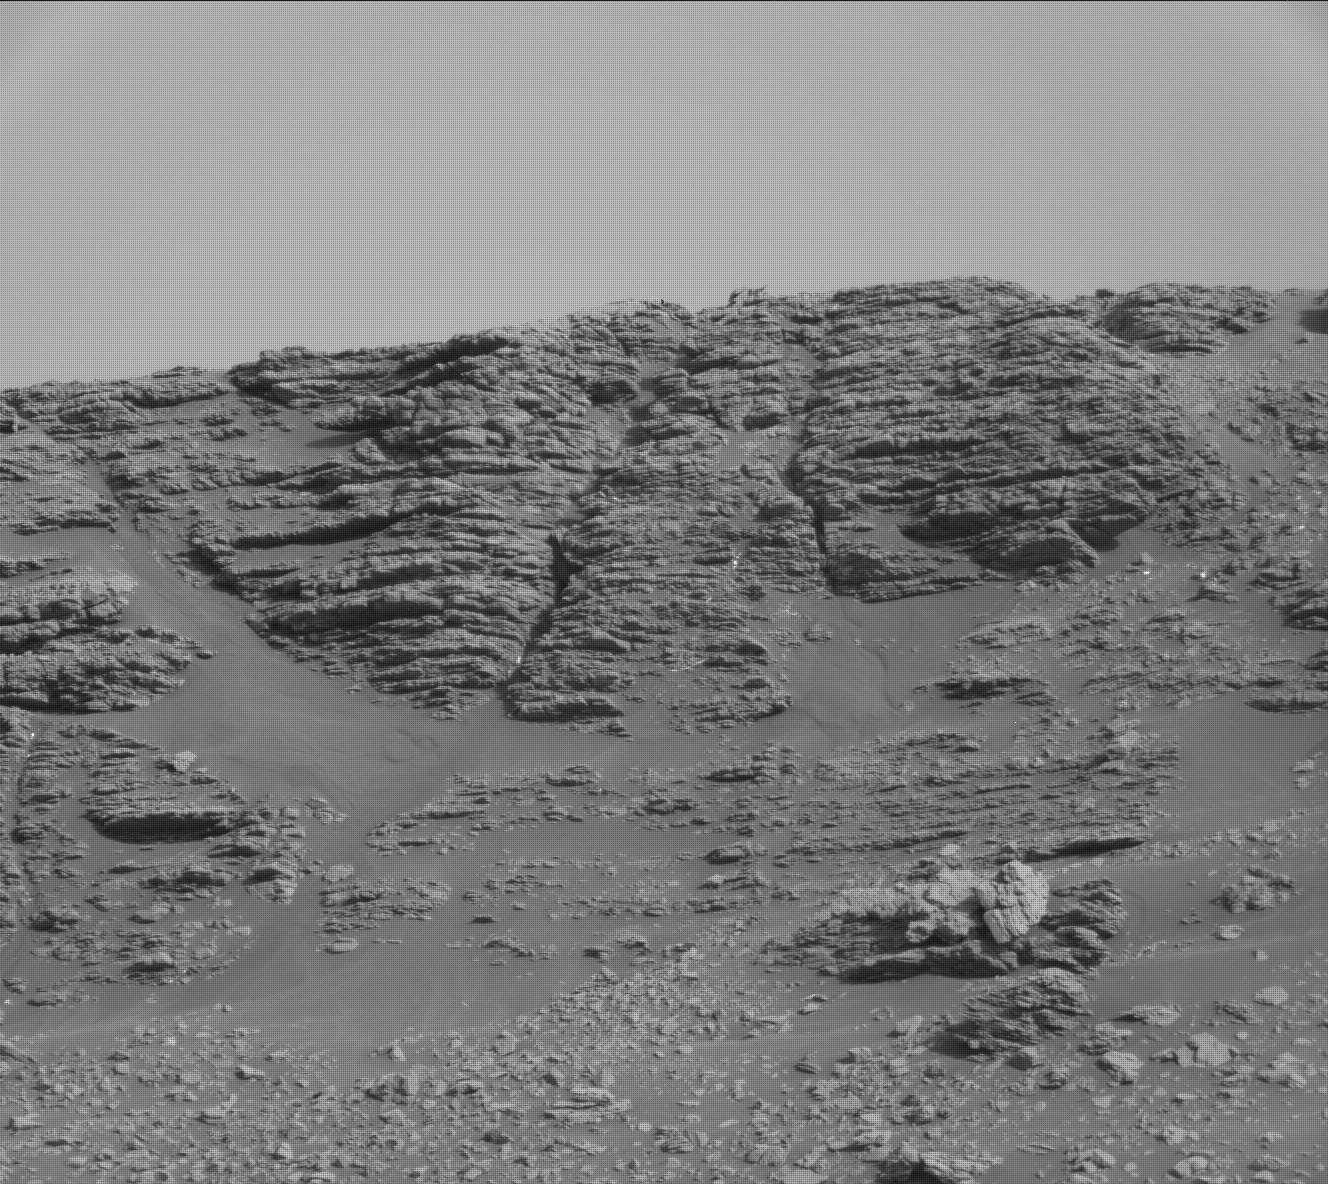 Sol 2474: A Great Outcrop!